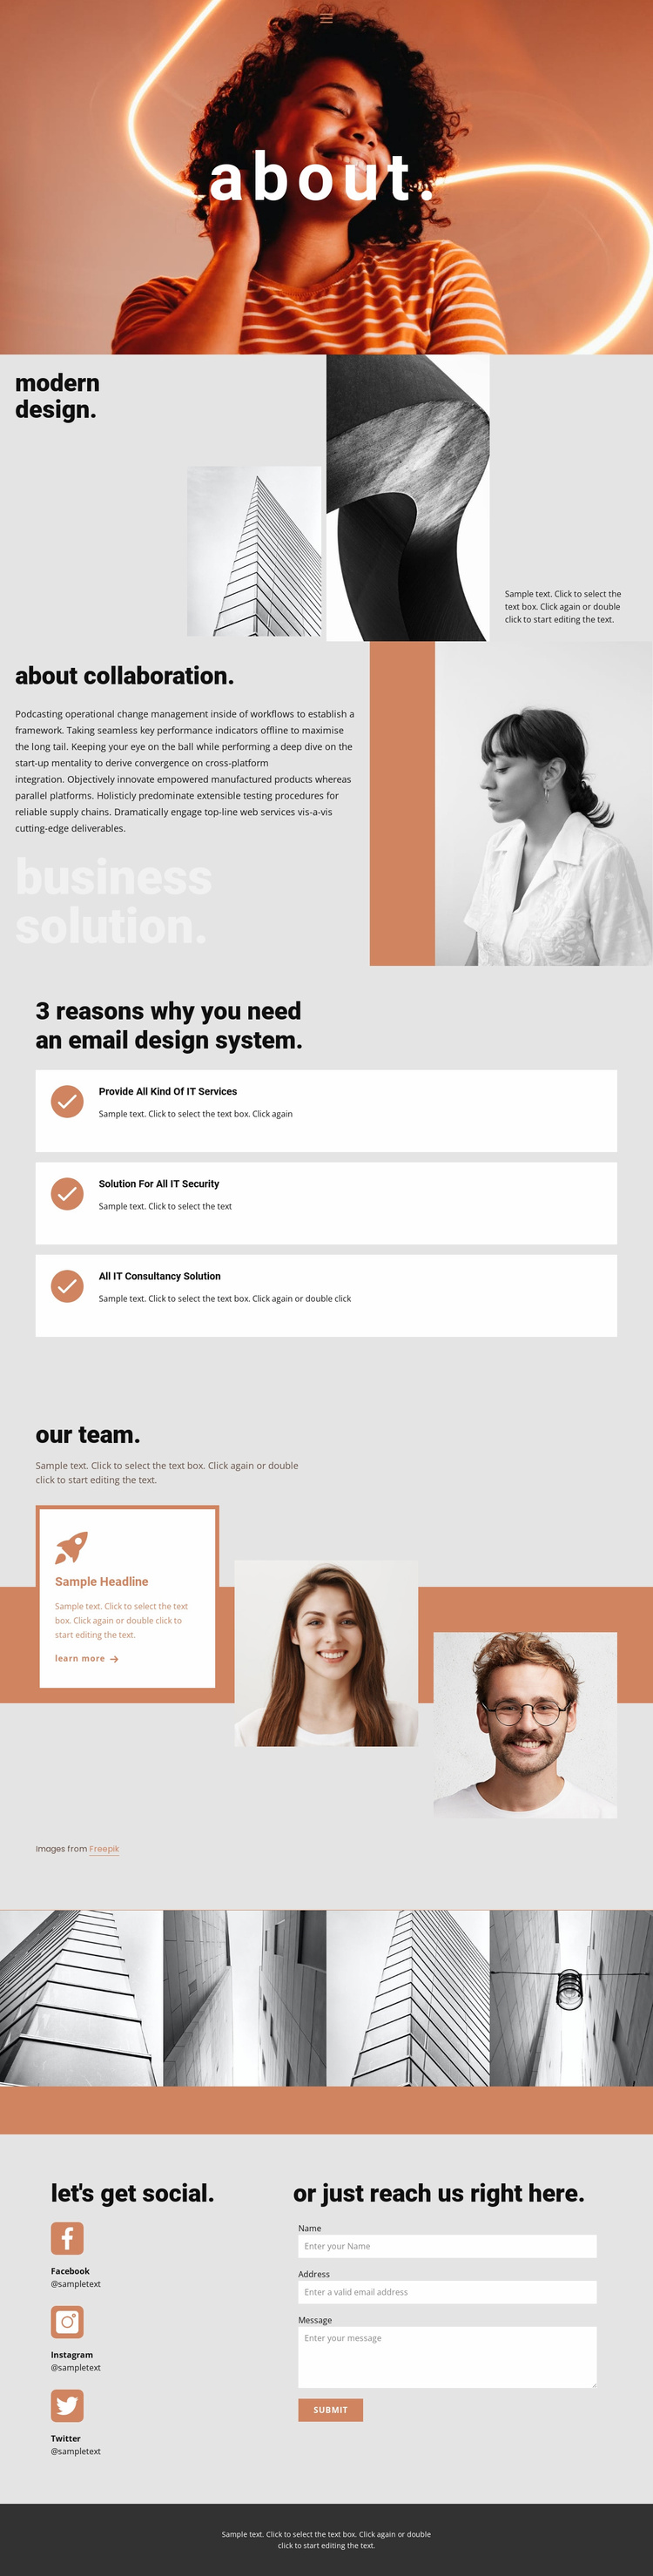 Union of Artists and Architects Website Template